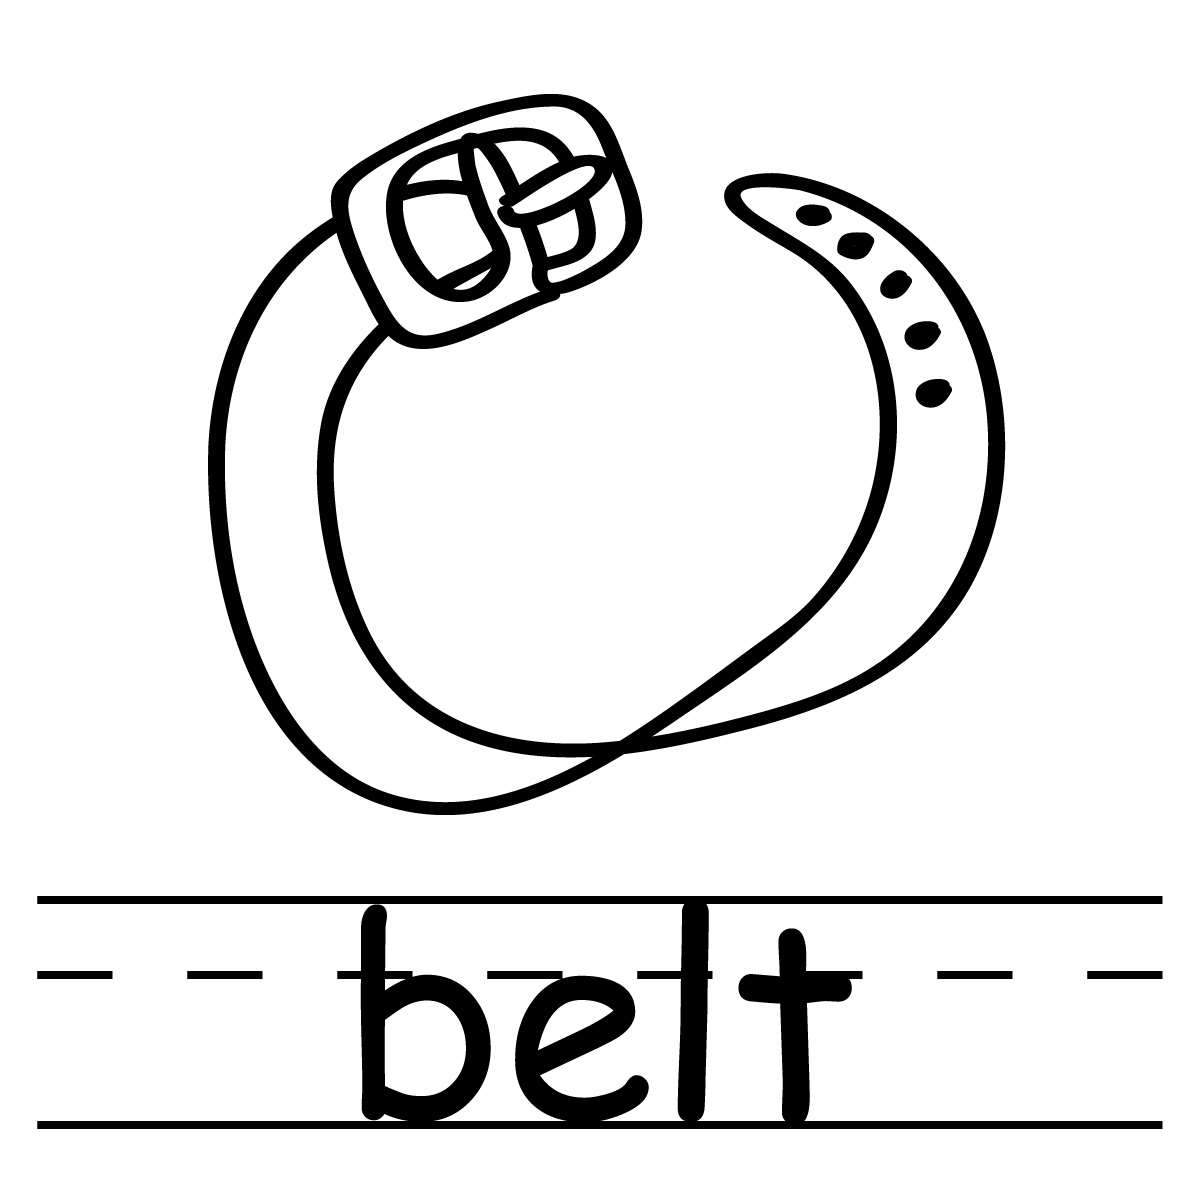 Belt clipart illustration. Free white cliparts download